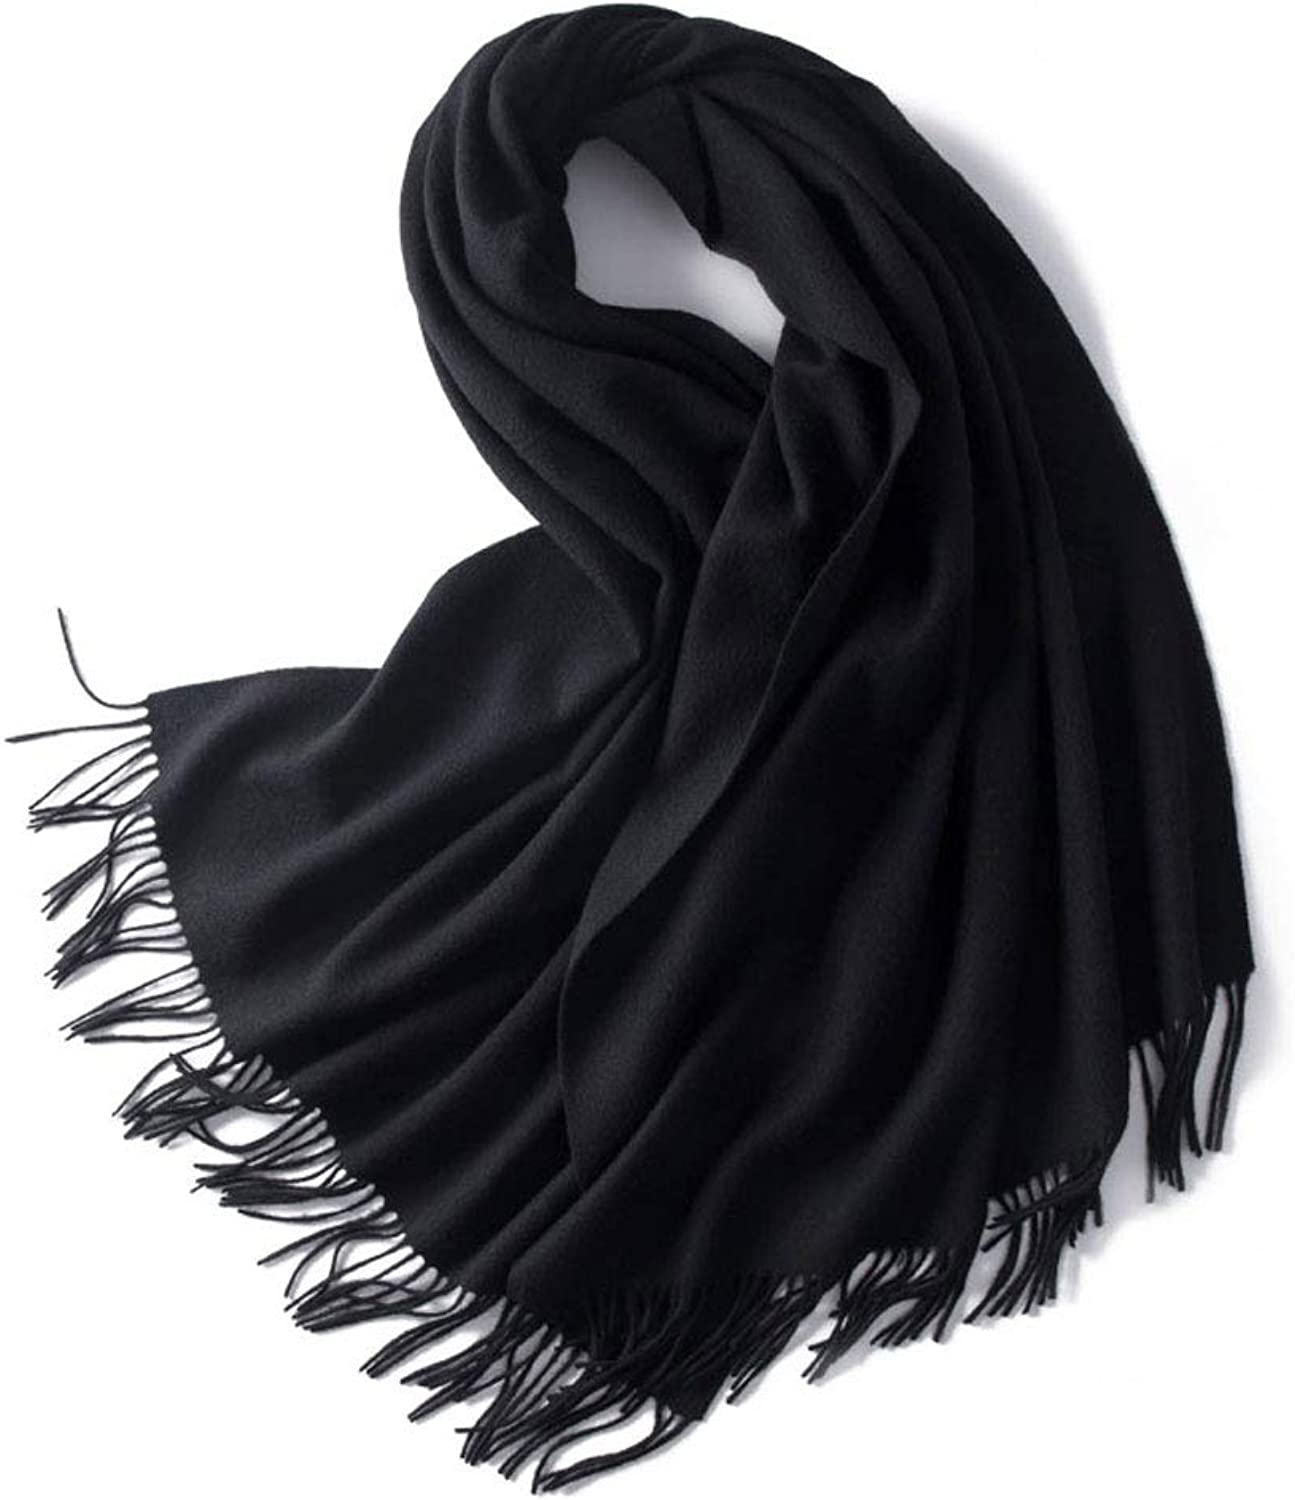 LBY Women's Solid color Soft and Comfortable Shawl Versatile Thick Warm Long Paragraph Large Size Dualuse Scarf Scarf (color   Black)